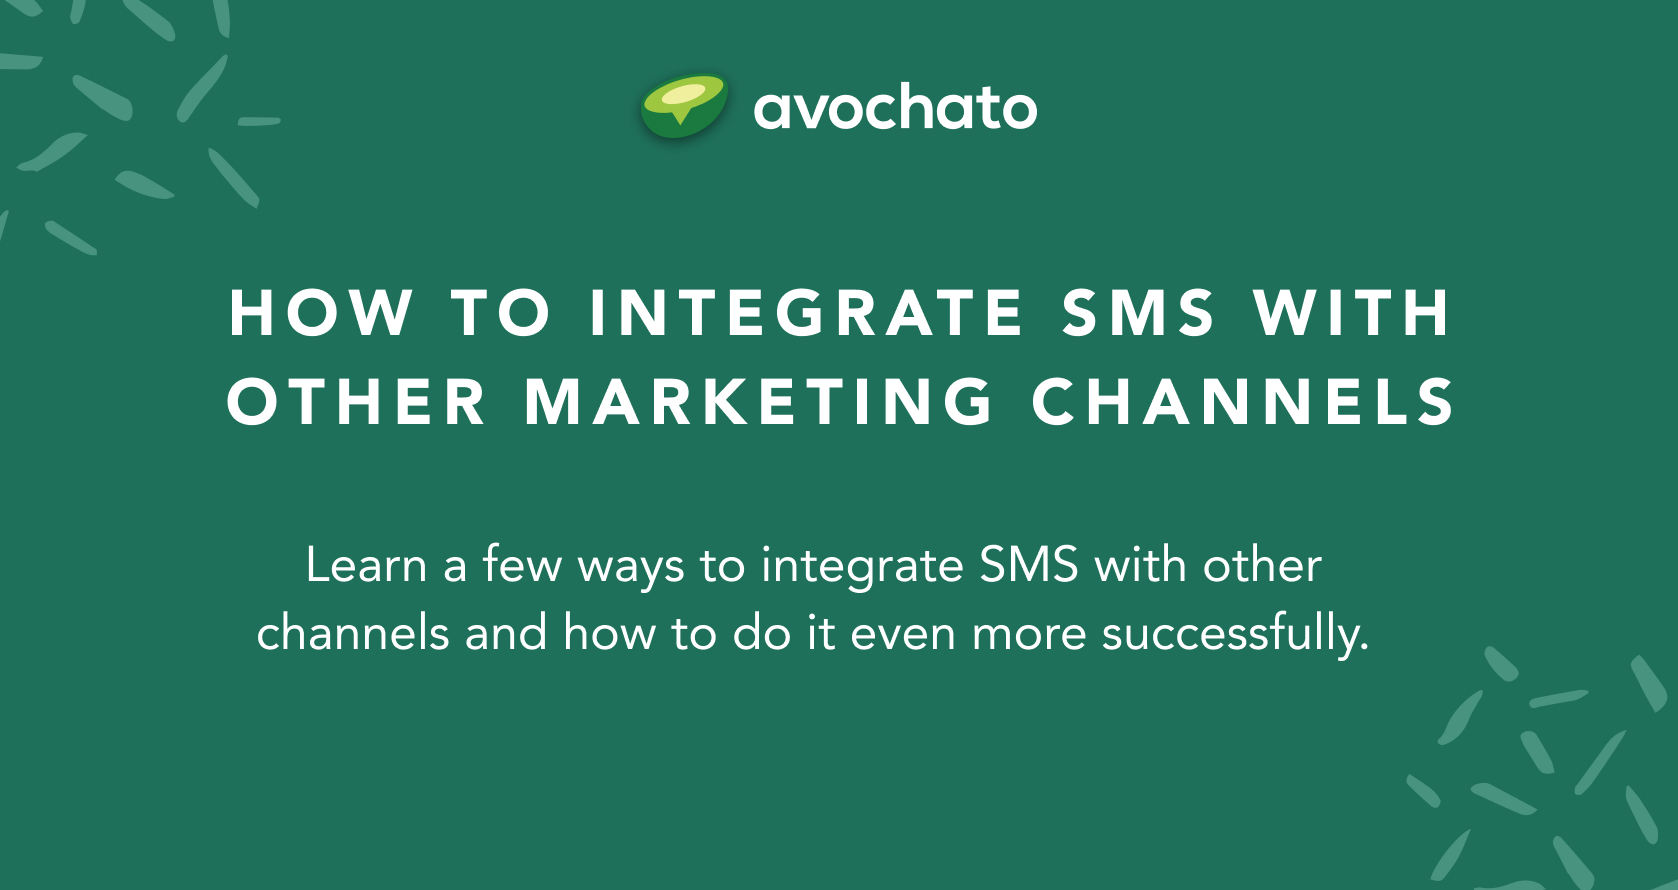 integrate sms with other marketing channels